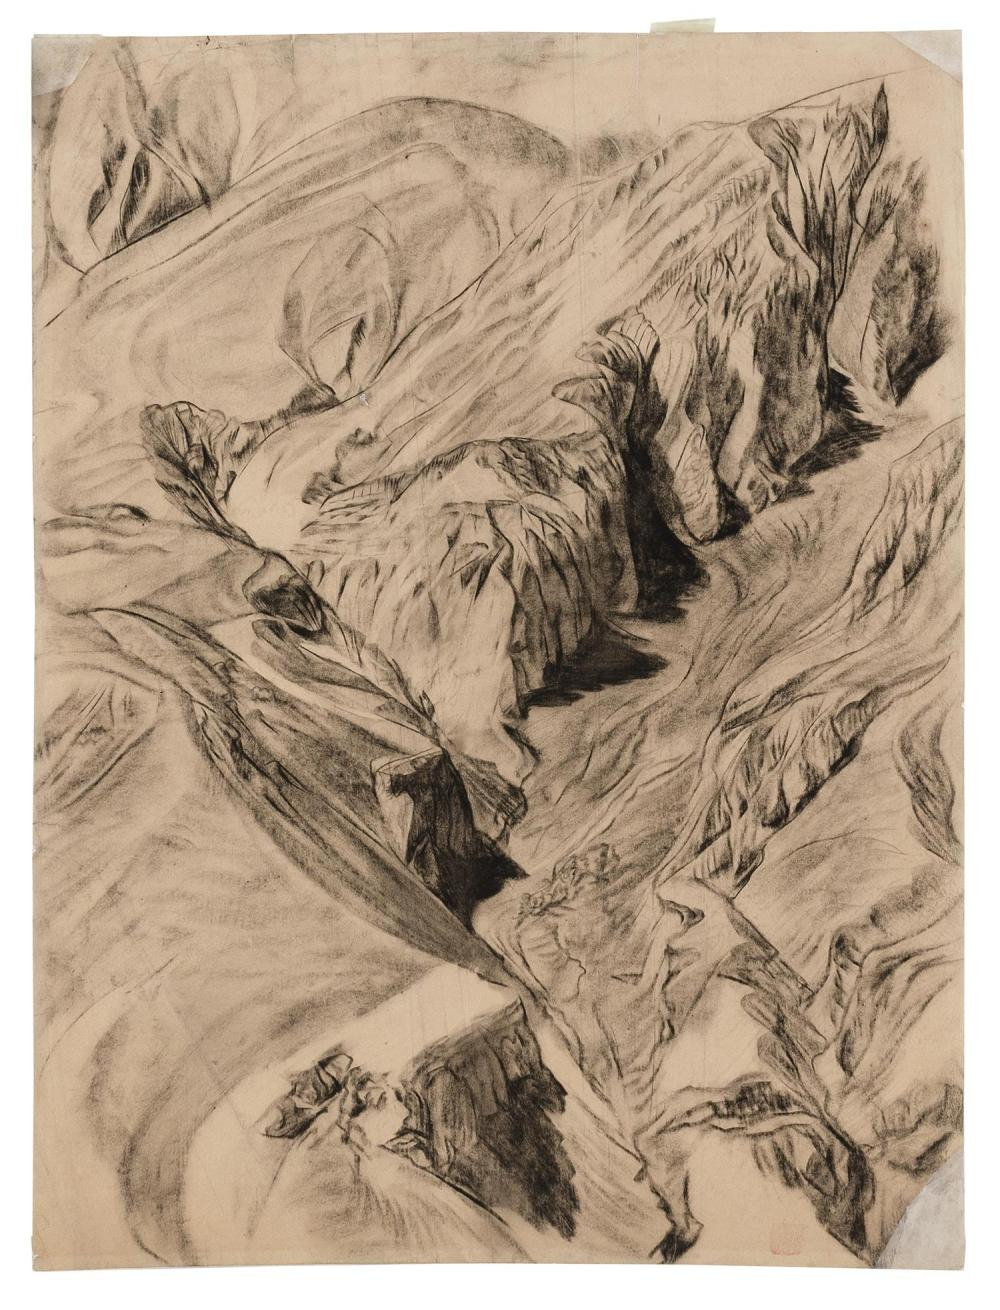 """ATTRIBUTED TO ALEXANDRE EVGENIEVICH YAKOVLEV, Russian Federation, 1887-1938, Mountainous landscape., Charcoal on paper, 28.5"""" x 21.5..."""